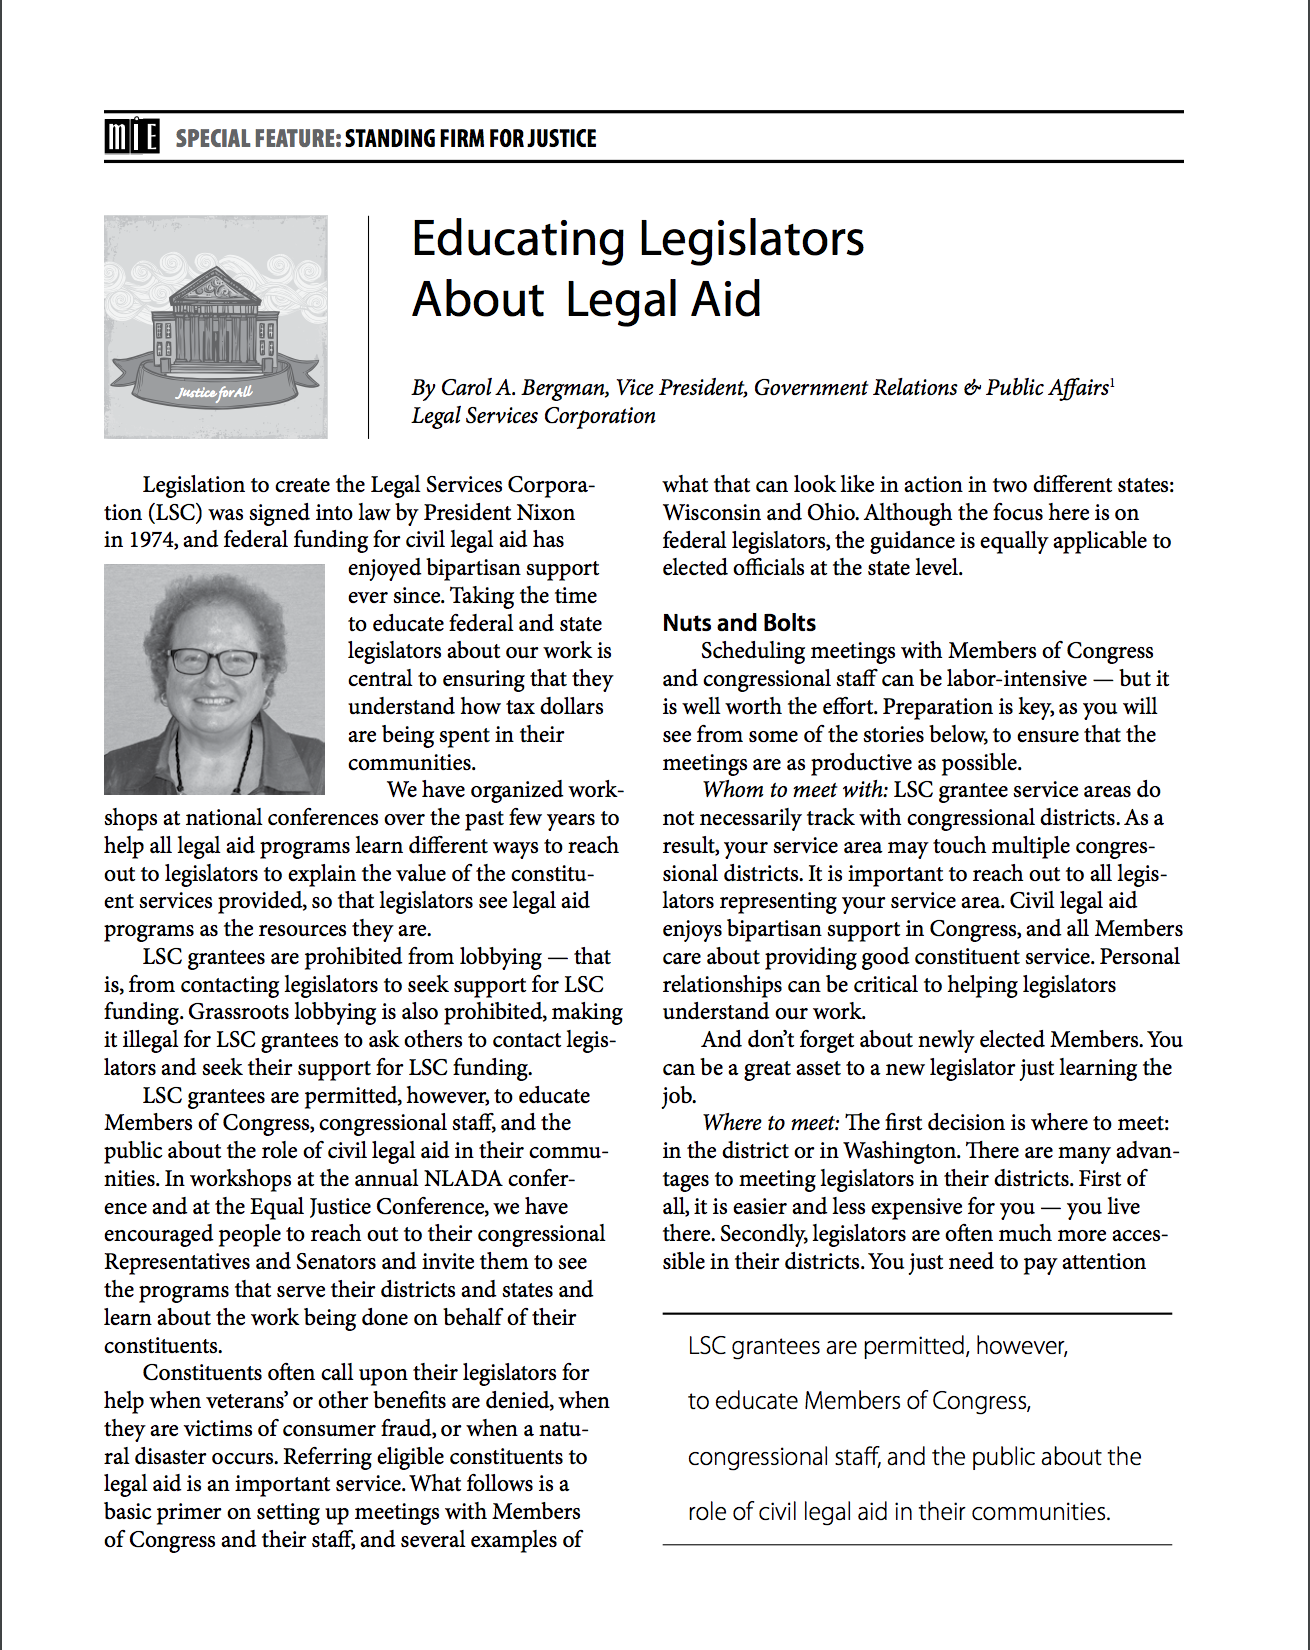 Educating Legislators About Legal Aid